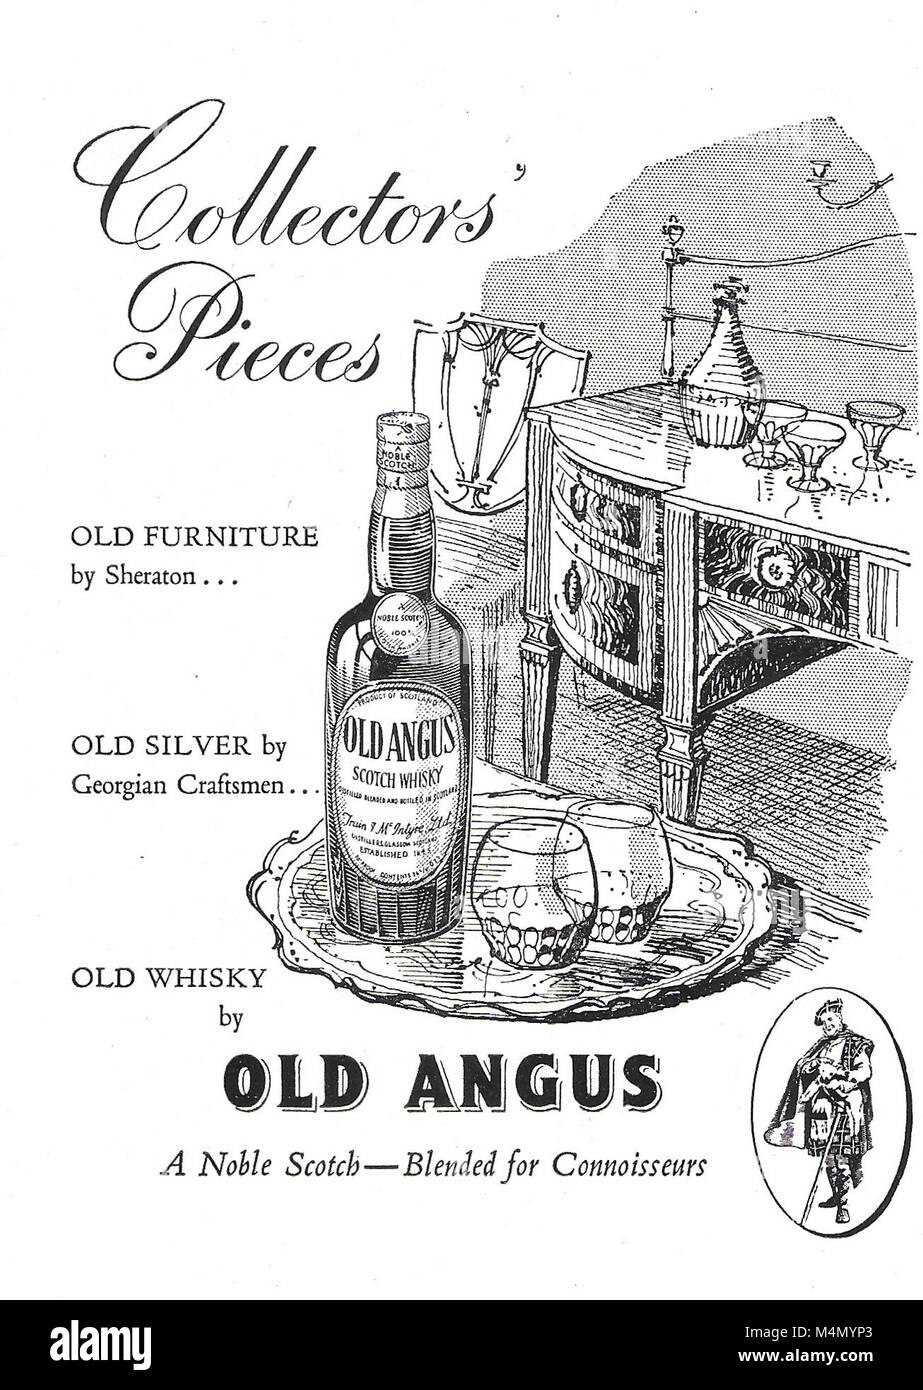 Collectors Piece Old Angus scotch whisky advert, advertising in Country Life magazine UK 1951 - Stock Image